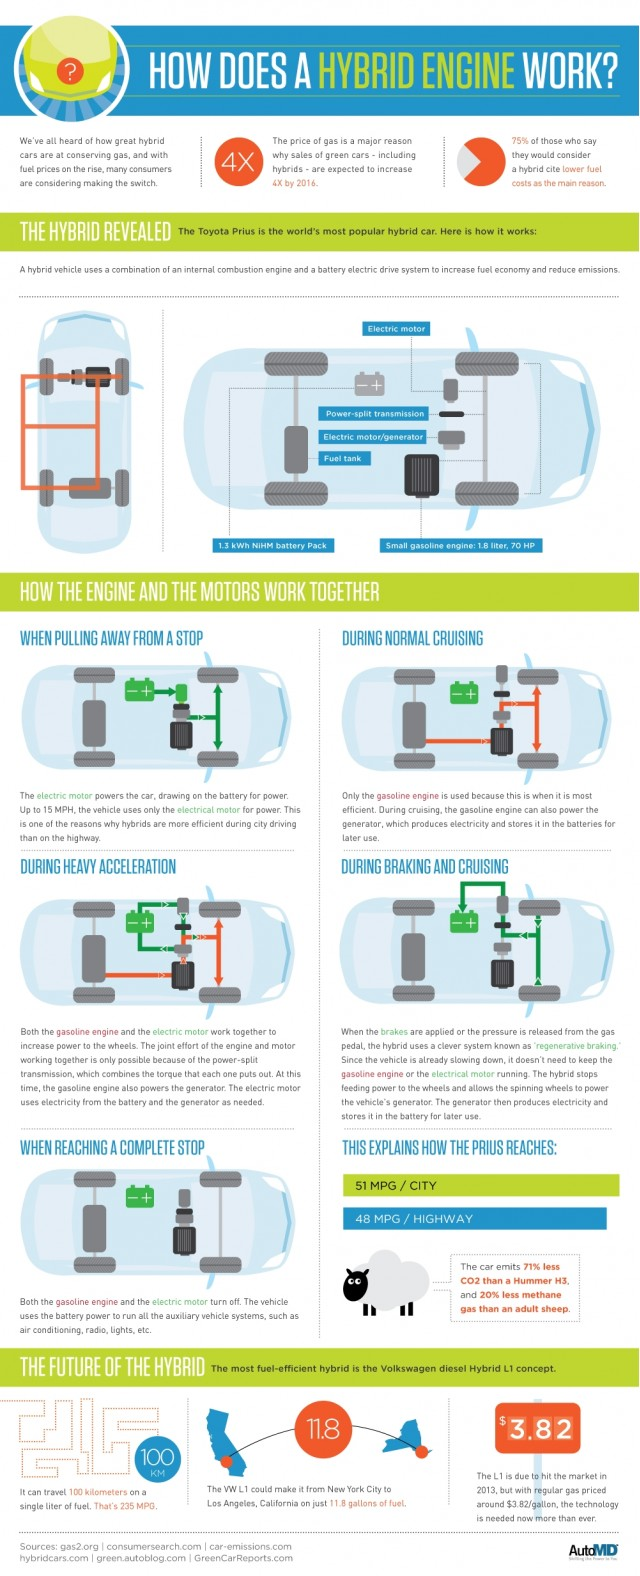 How Do Hybrid Cars and Trucks Work?